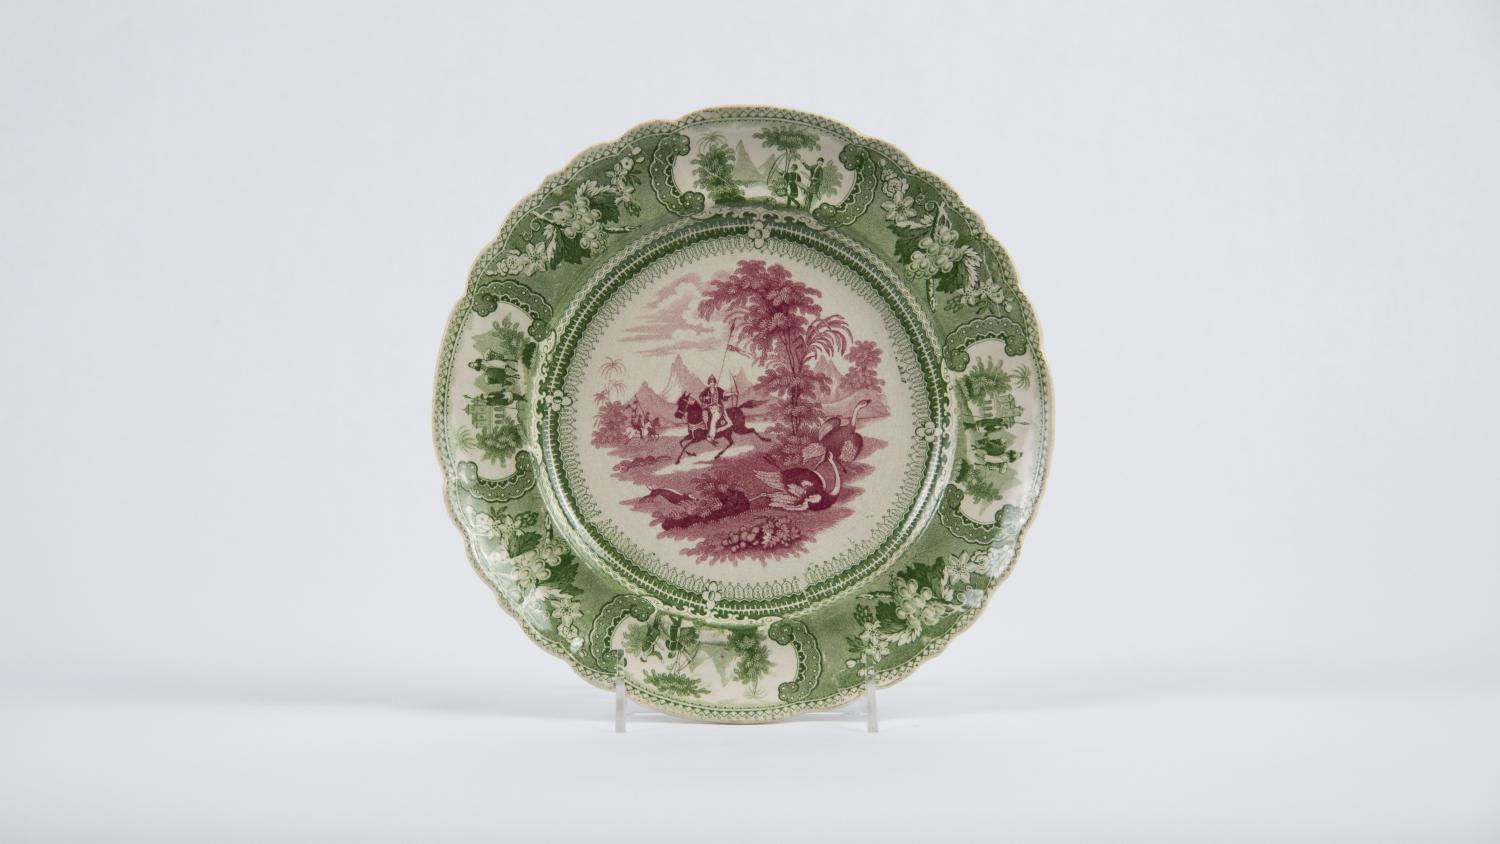 """Enoch Wood & Sons, Plate with """"Belzoni"""" Pattern, 1830-1840. Earthenware, transfer-printed in underglaze red and green. Theresa E. and Harlan E. Moore Collection. 1967-24-103"""